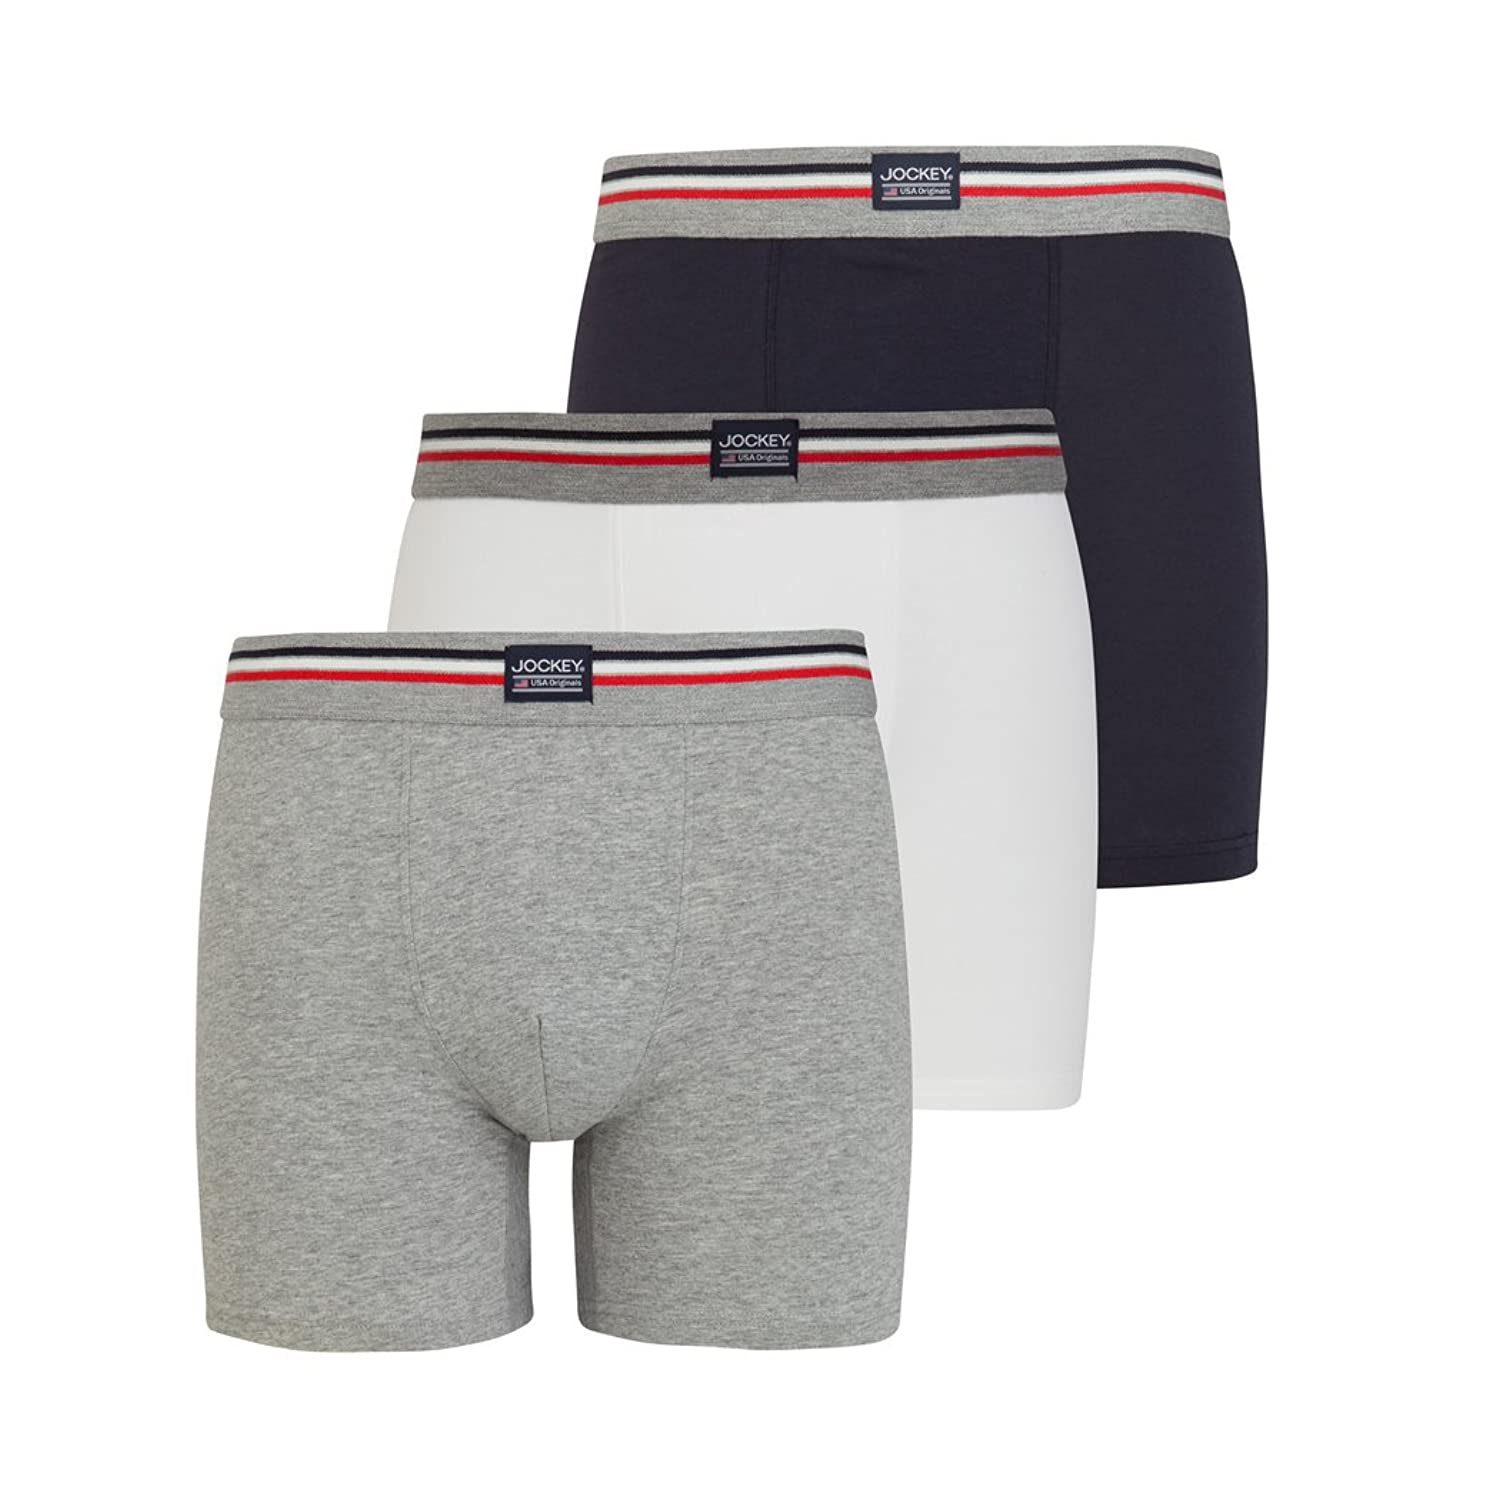 Jockey Trunk Six Pack - Markenunterhosen - black stripe und navy S bis 2 XL